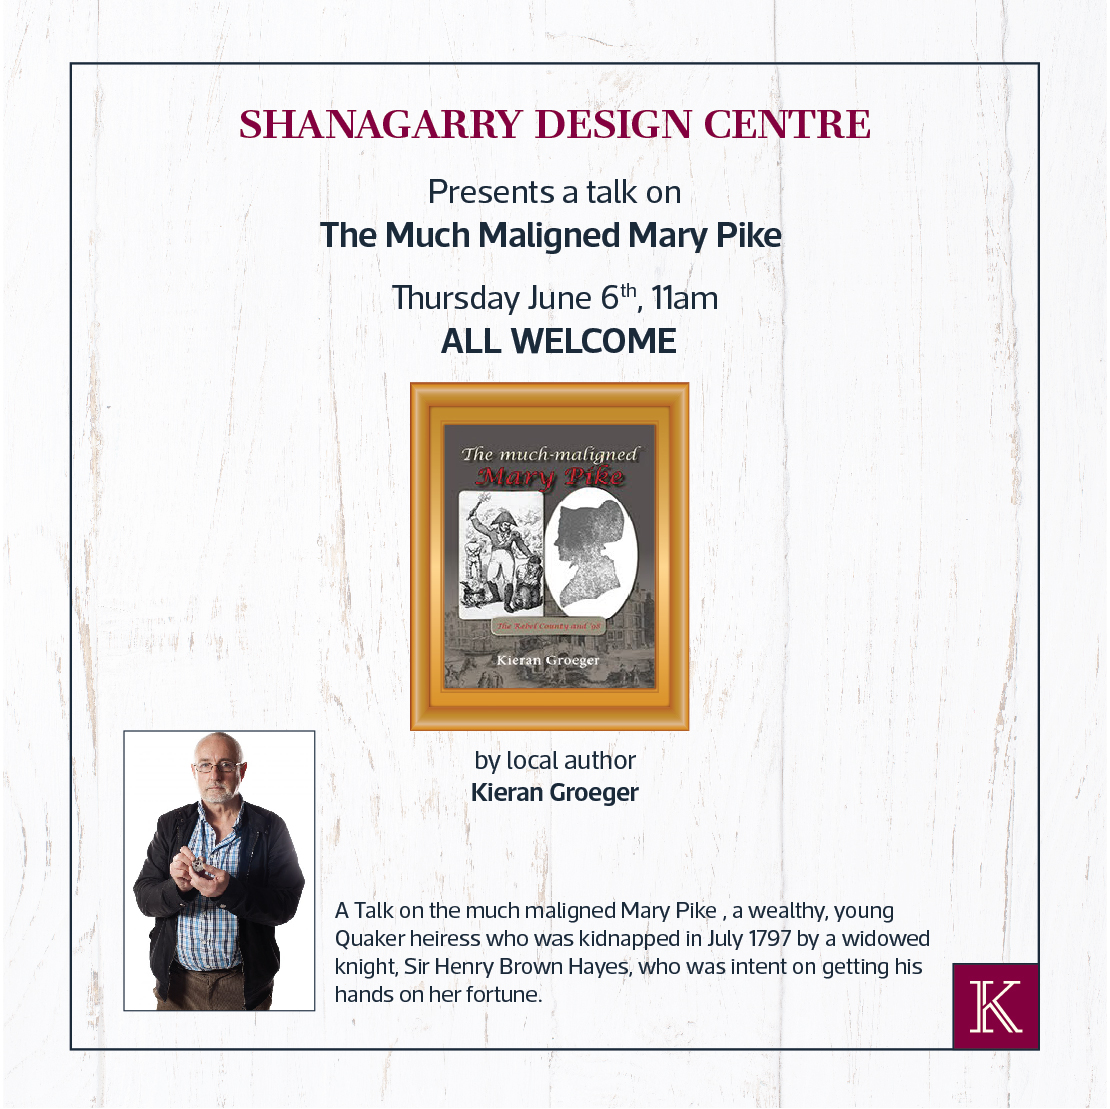 'The Much Maligned Mary Pike' Historical Talk at Kilkenny Centre Shanagarry - Ring of Cork